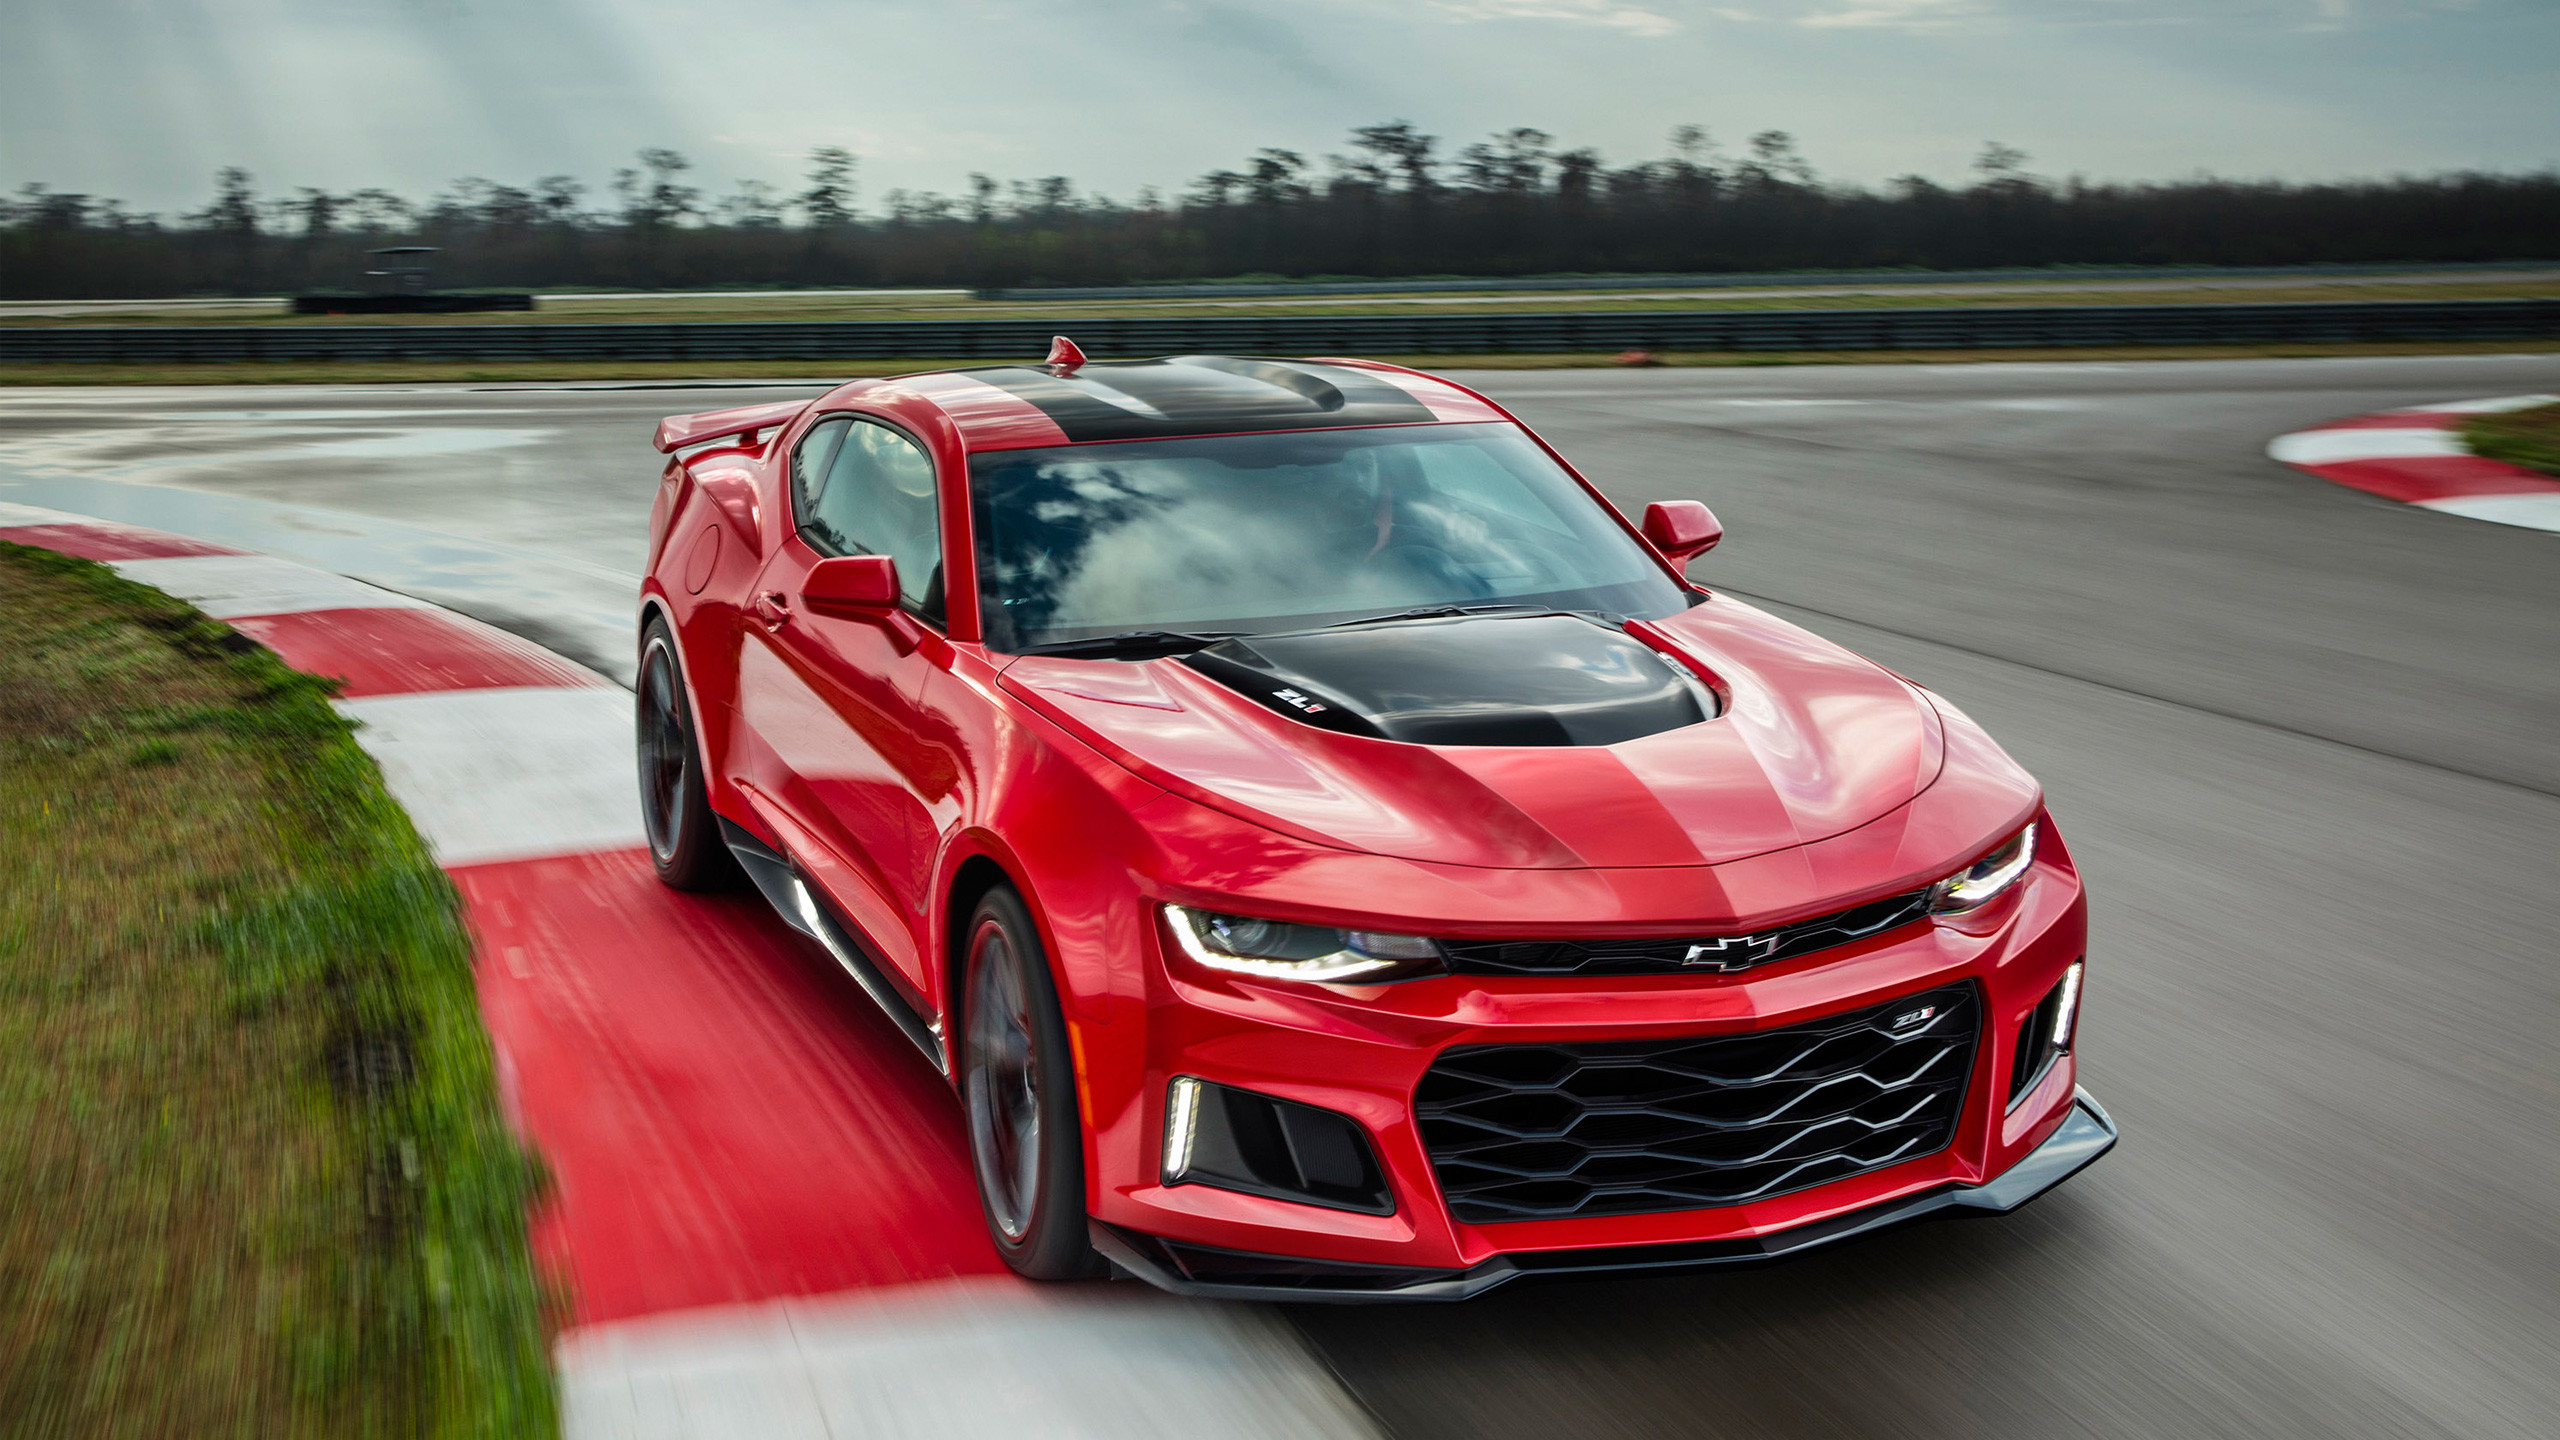 80 Camaro Zl1 Wallpapers on WallpaperPlay 2560x1440